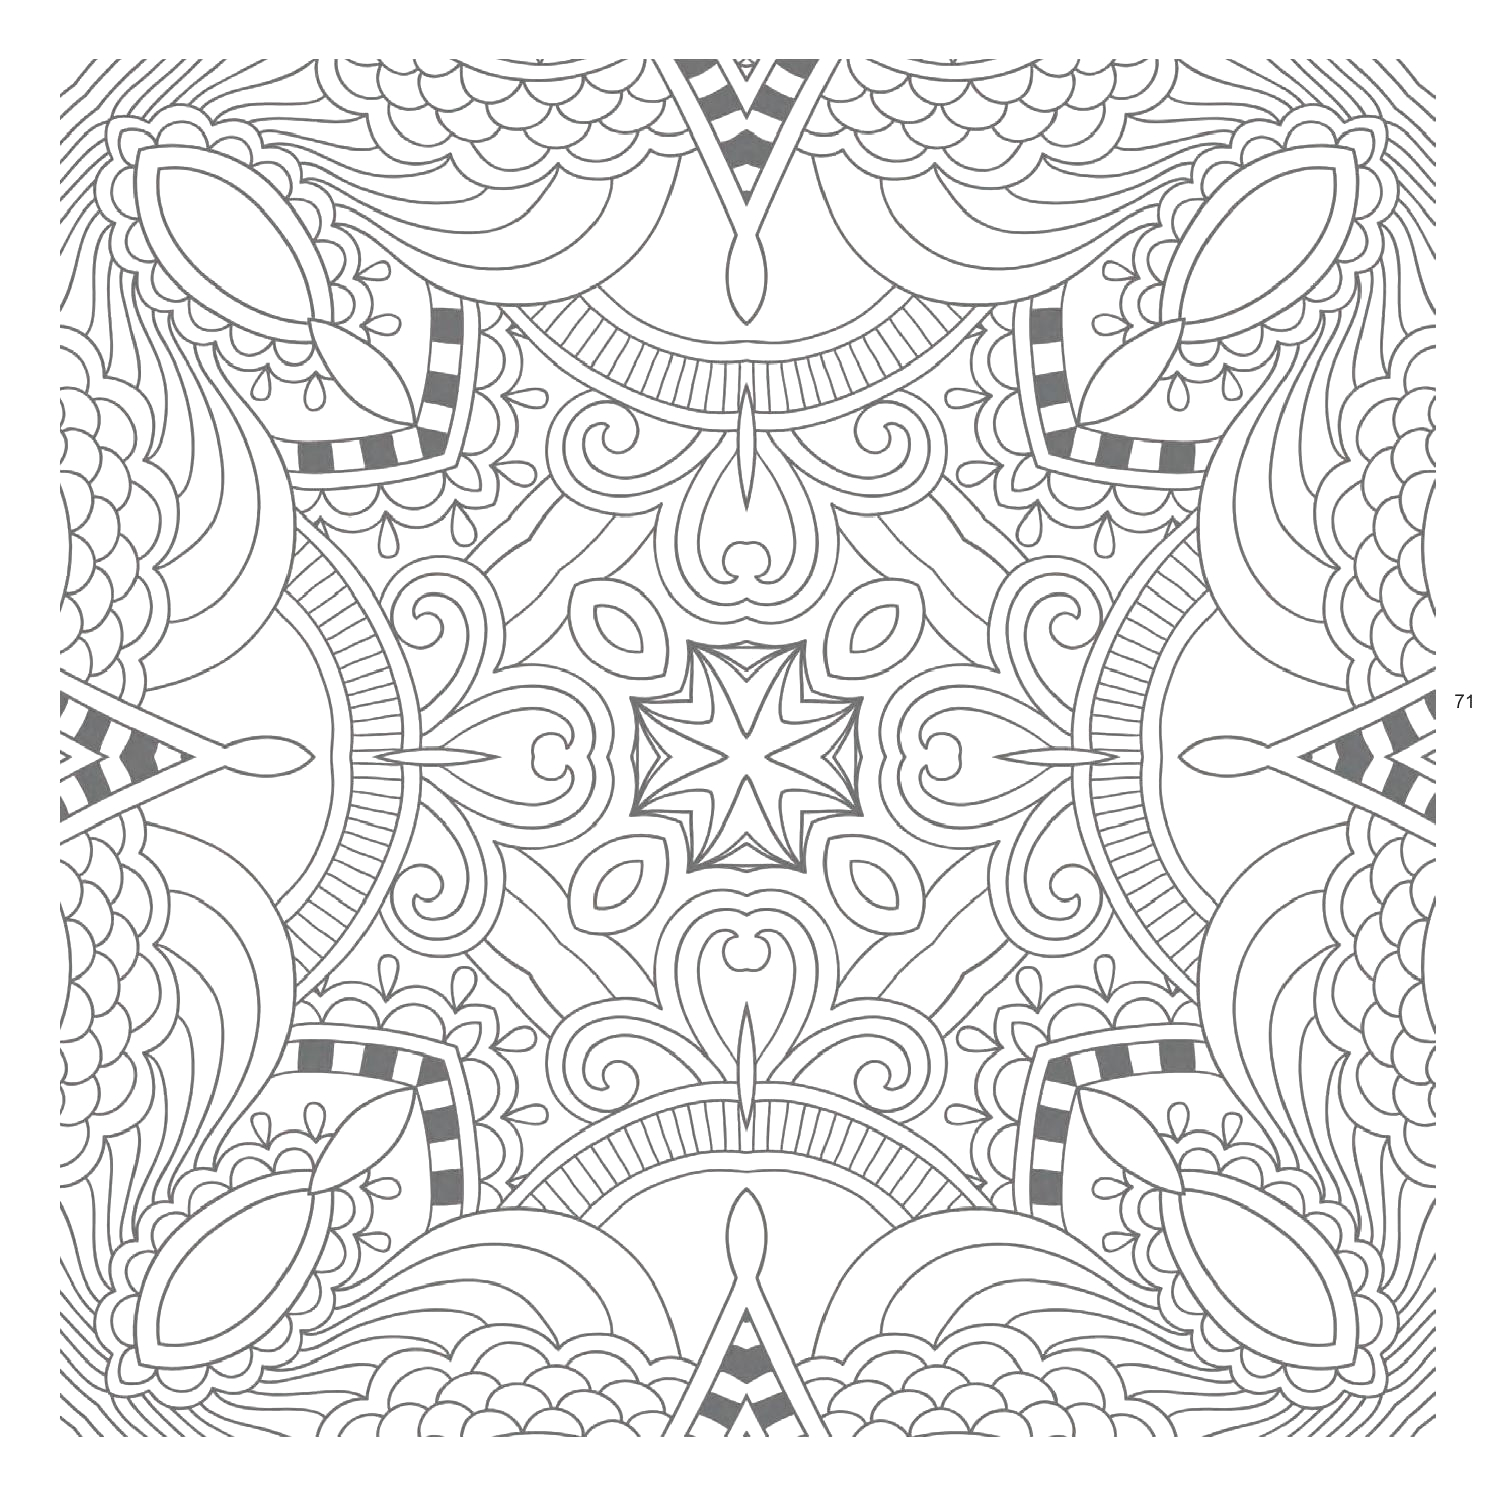 Free Printable Coloring Pages for Older Kids Coloring Pages for Older Kids at Getcolorings